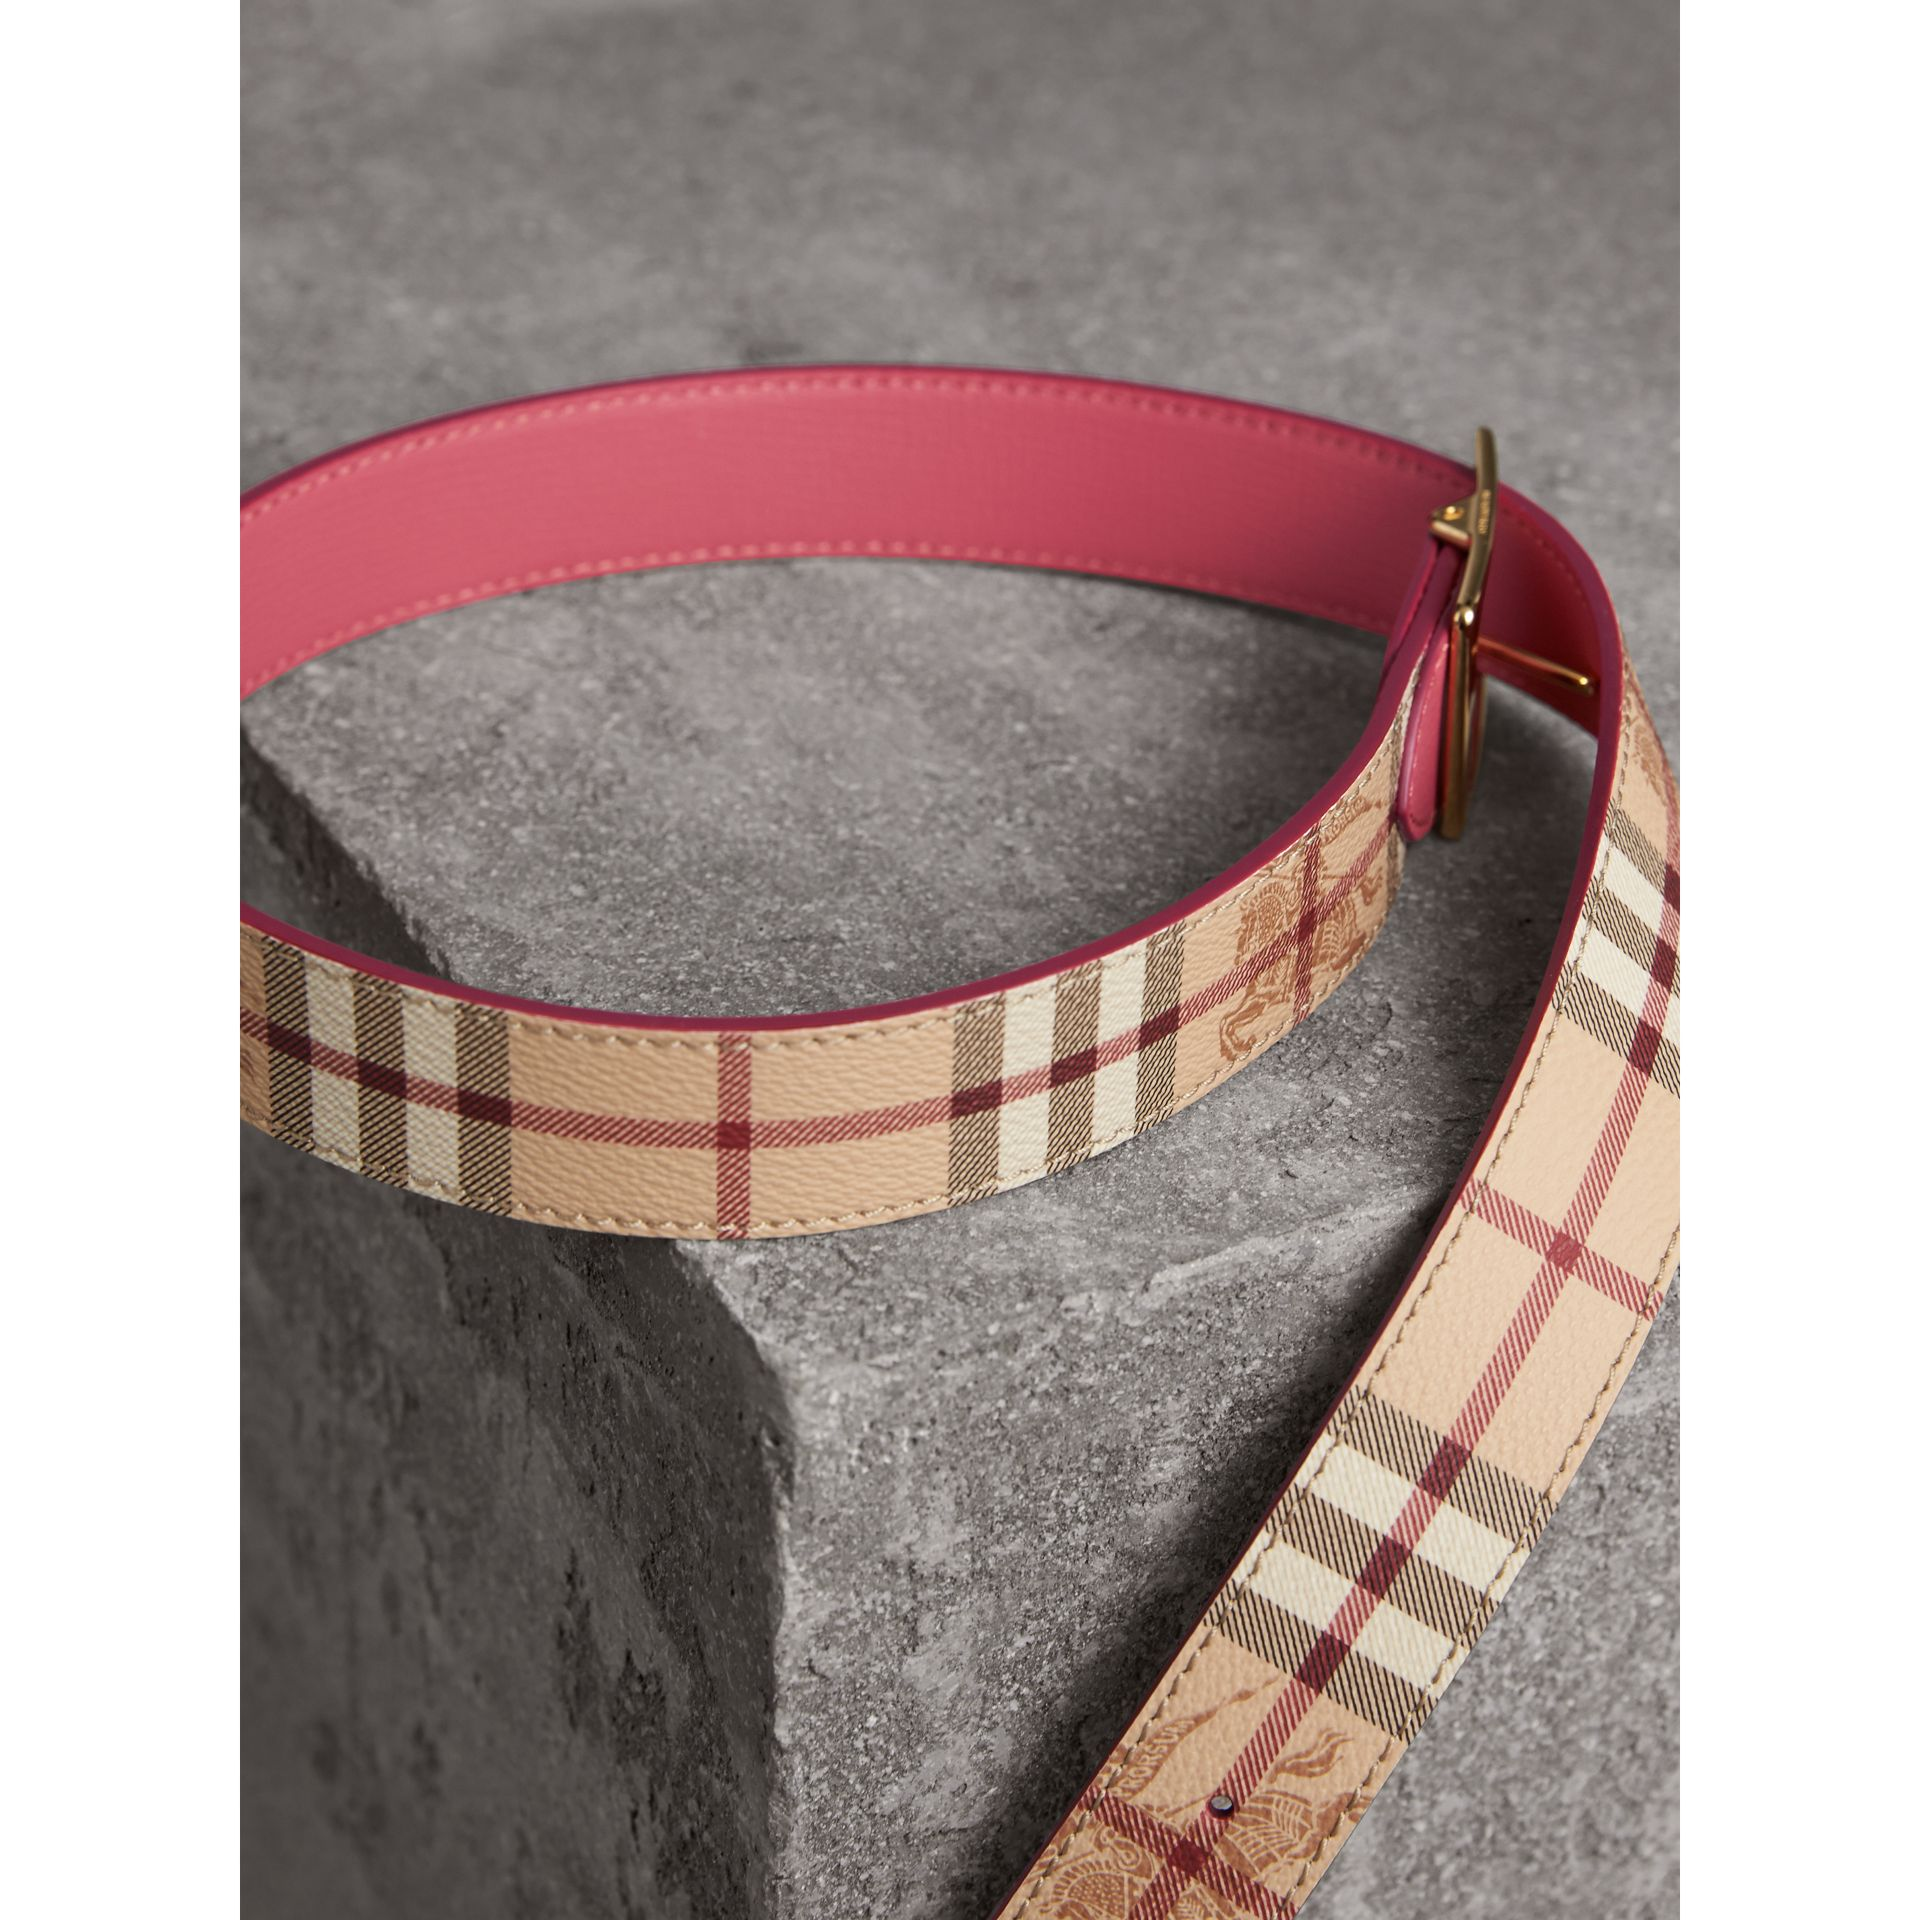 Riveted Reversible Check and Leather Belt in Plum Pink - Women | Burberry United States - gallery image 5